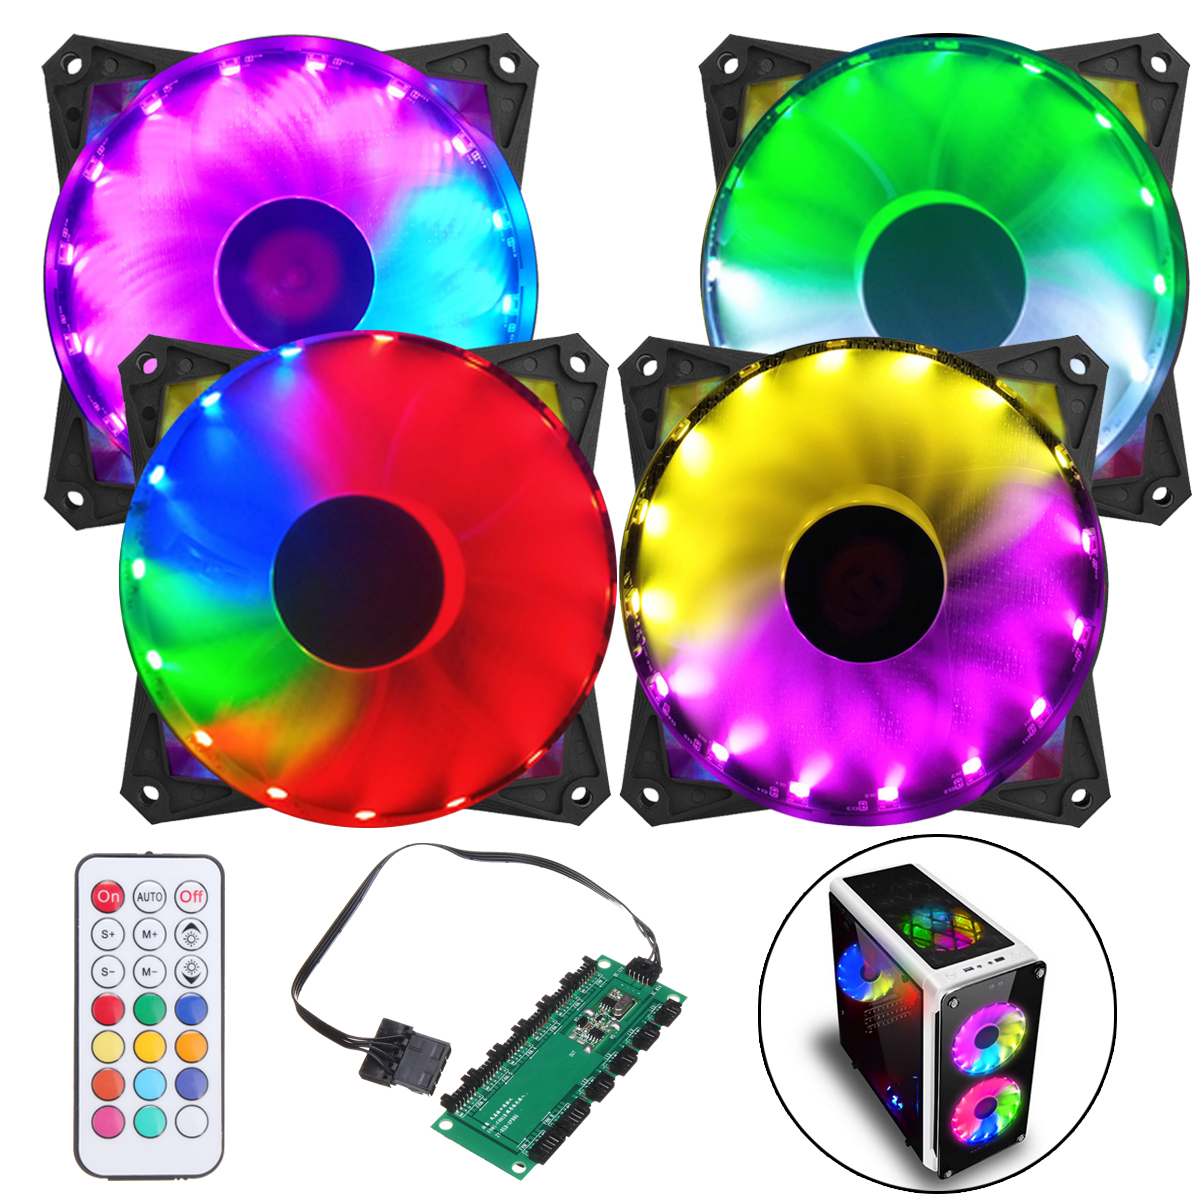 Coolmoon 4PCS 120mm Adjustable RGB Led Light PC Case Cooling Fan with Remote Control